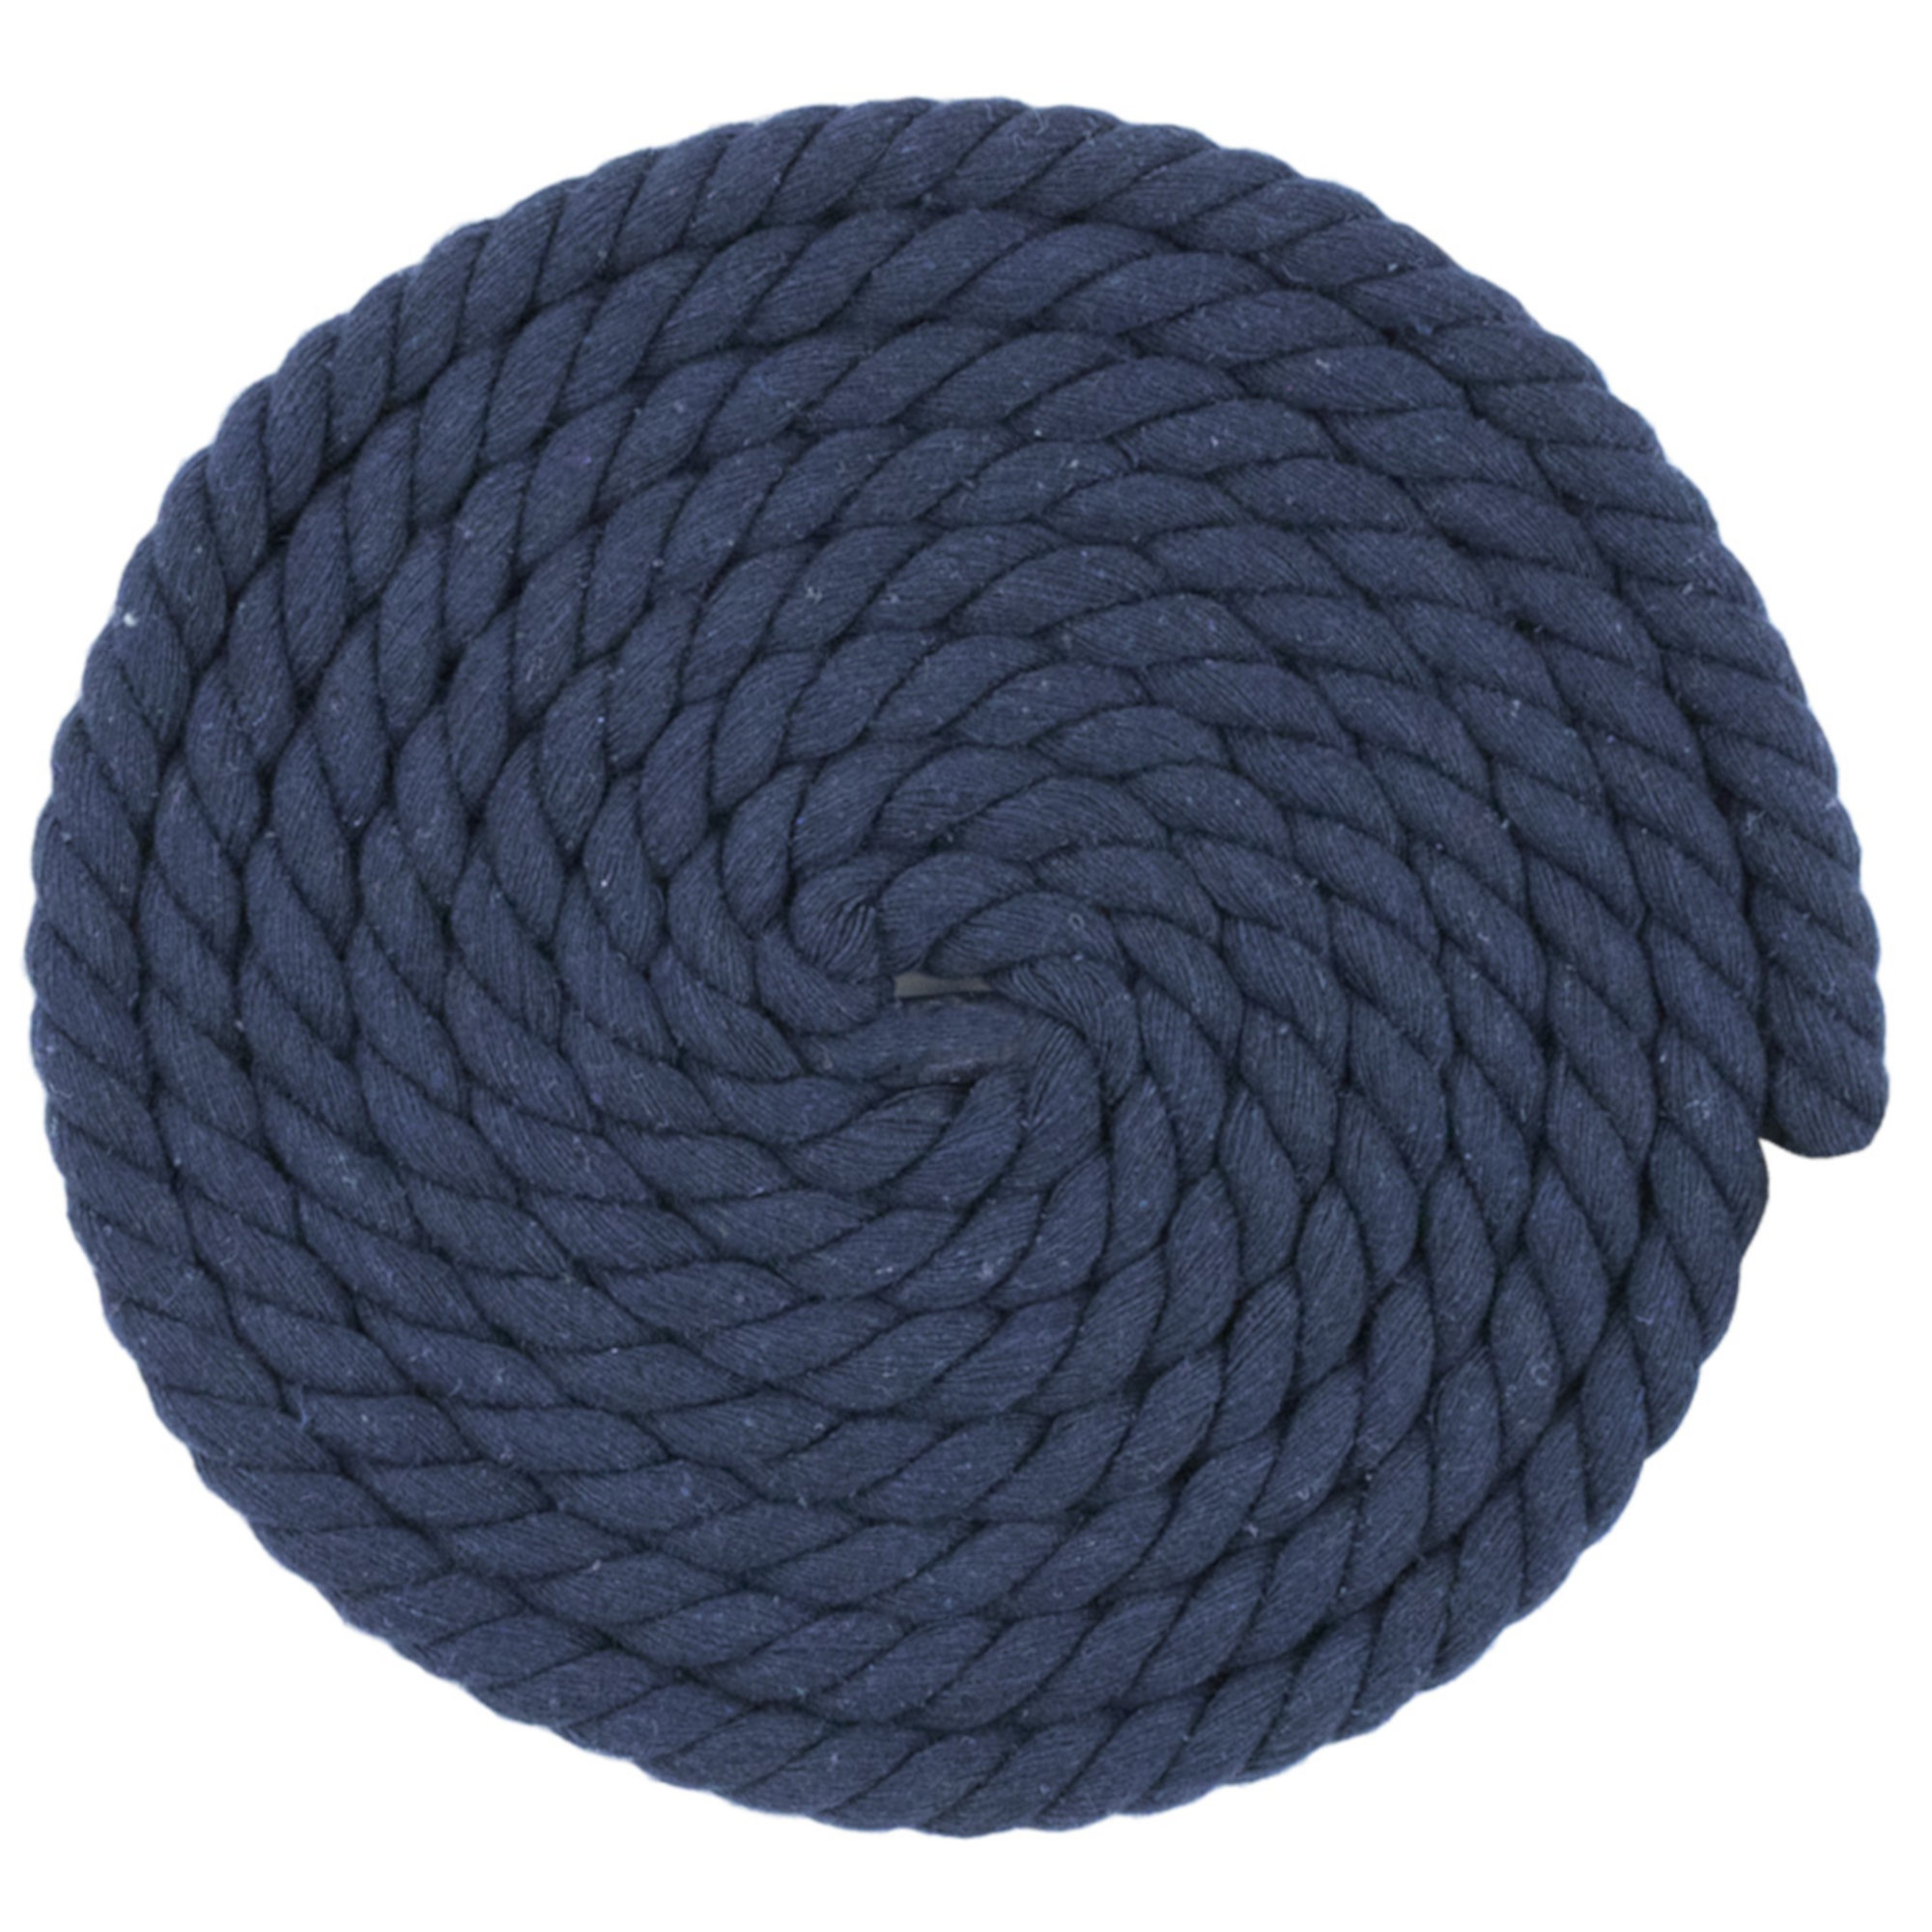 WCP 1/2 Inch Thick Super Soft Artisan Decorative Twisted 100% Cotton Rope - Navy